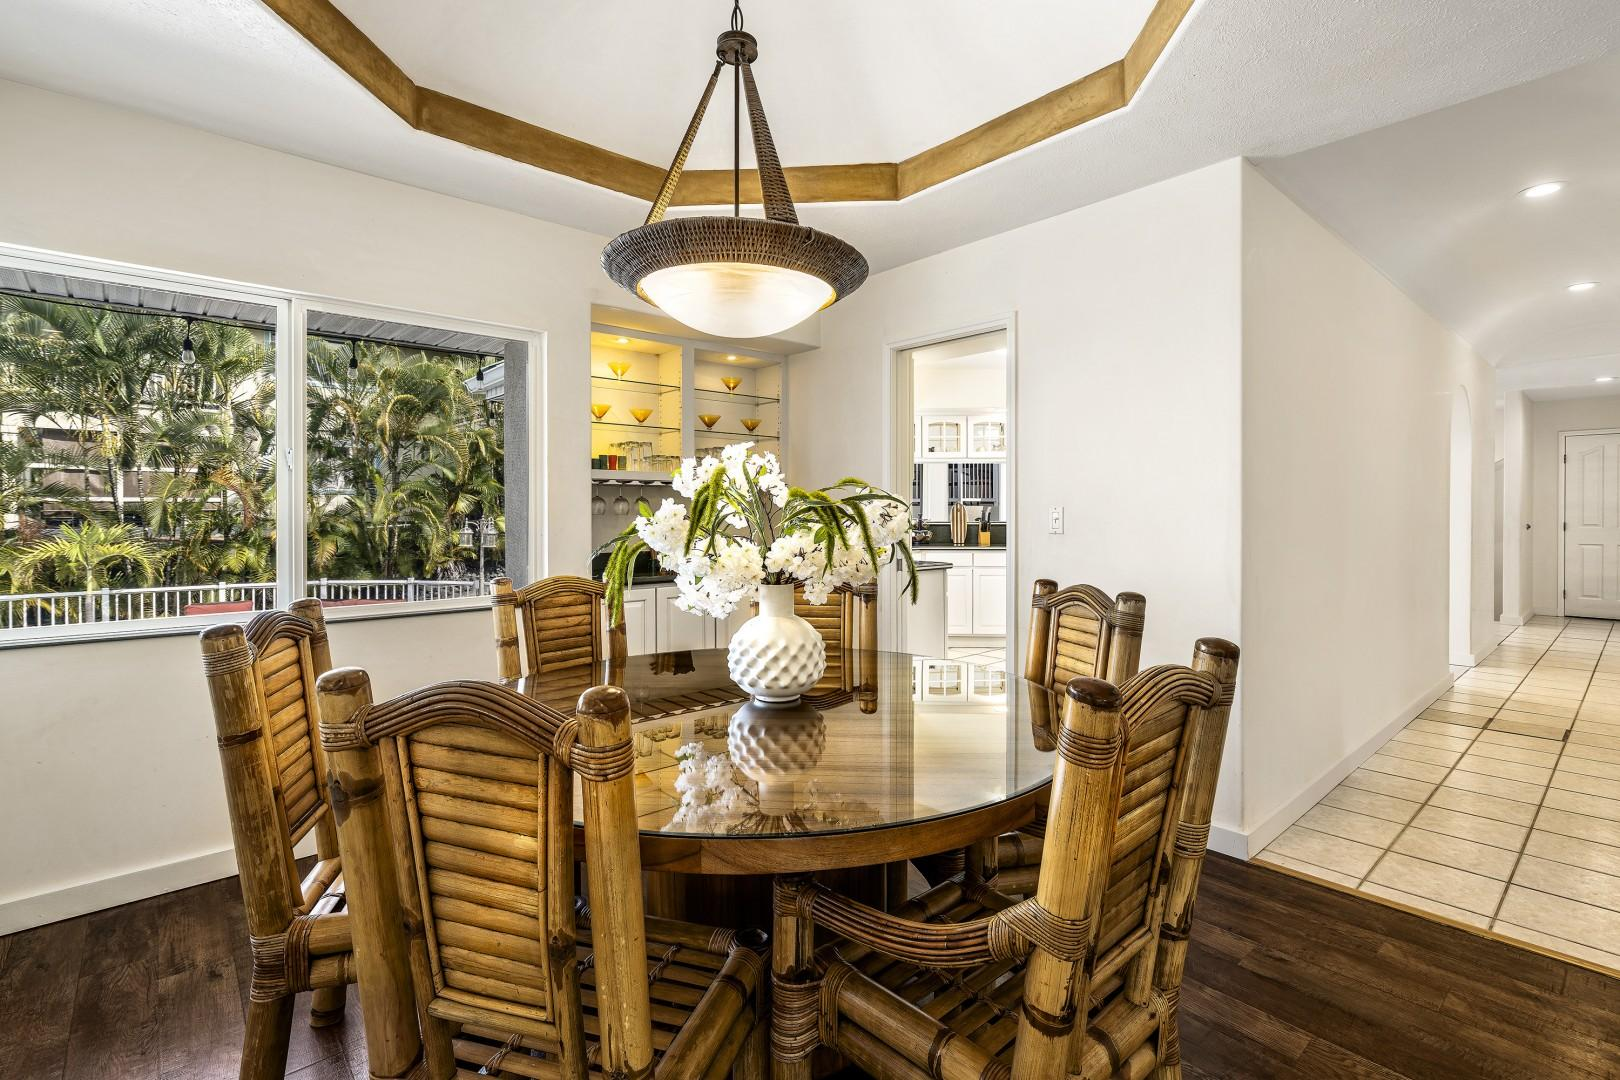 Dining indoors for 6 guests near the kitchen